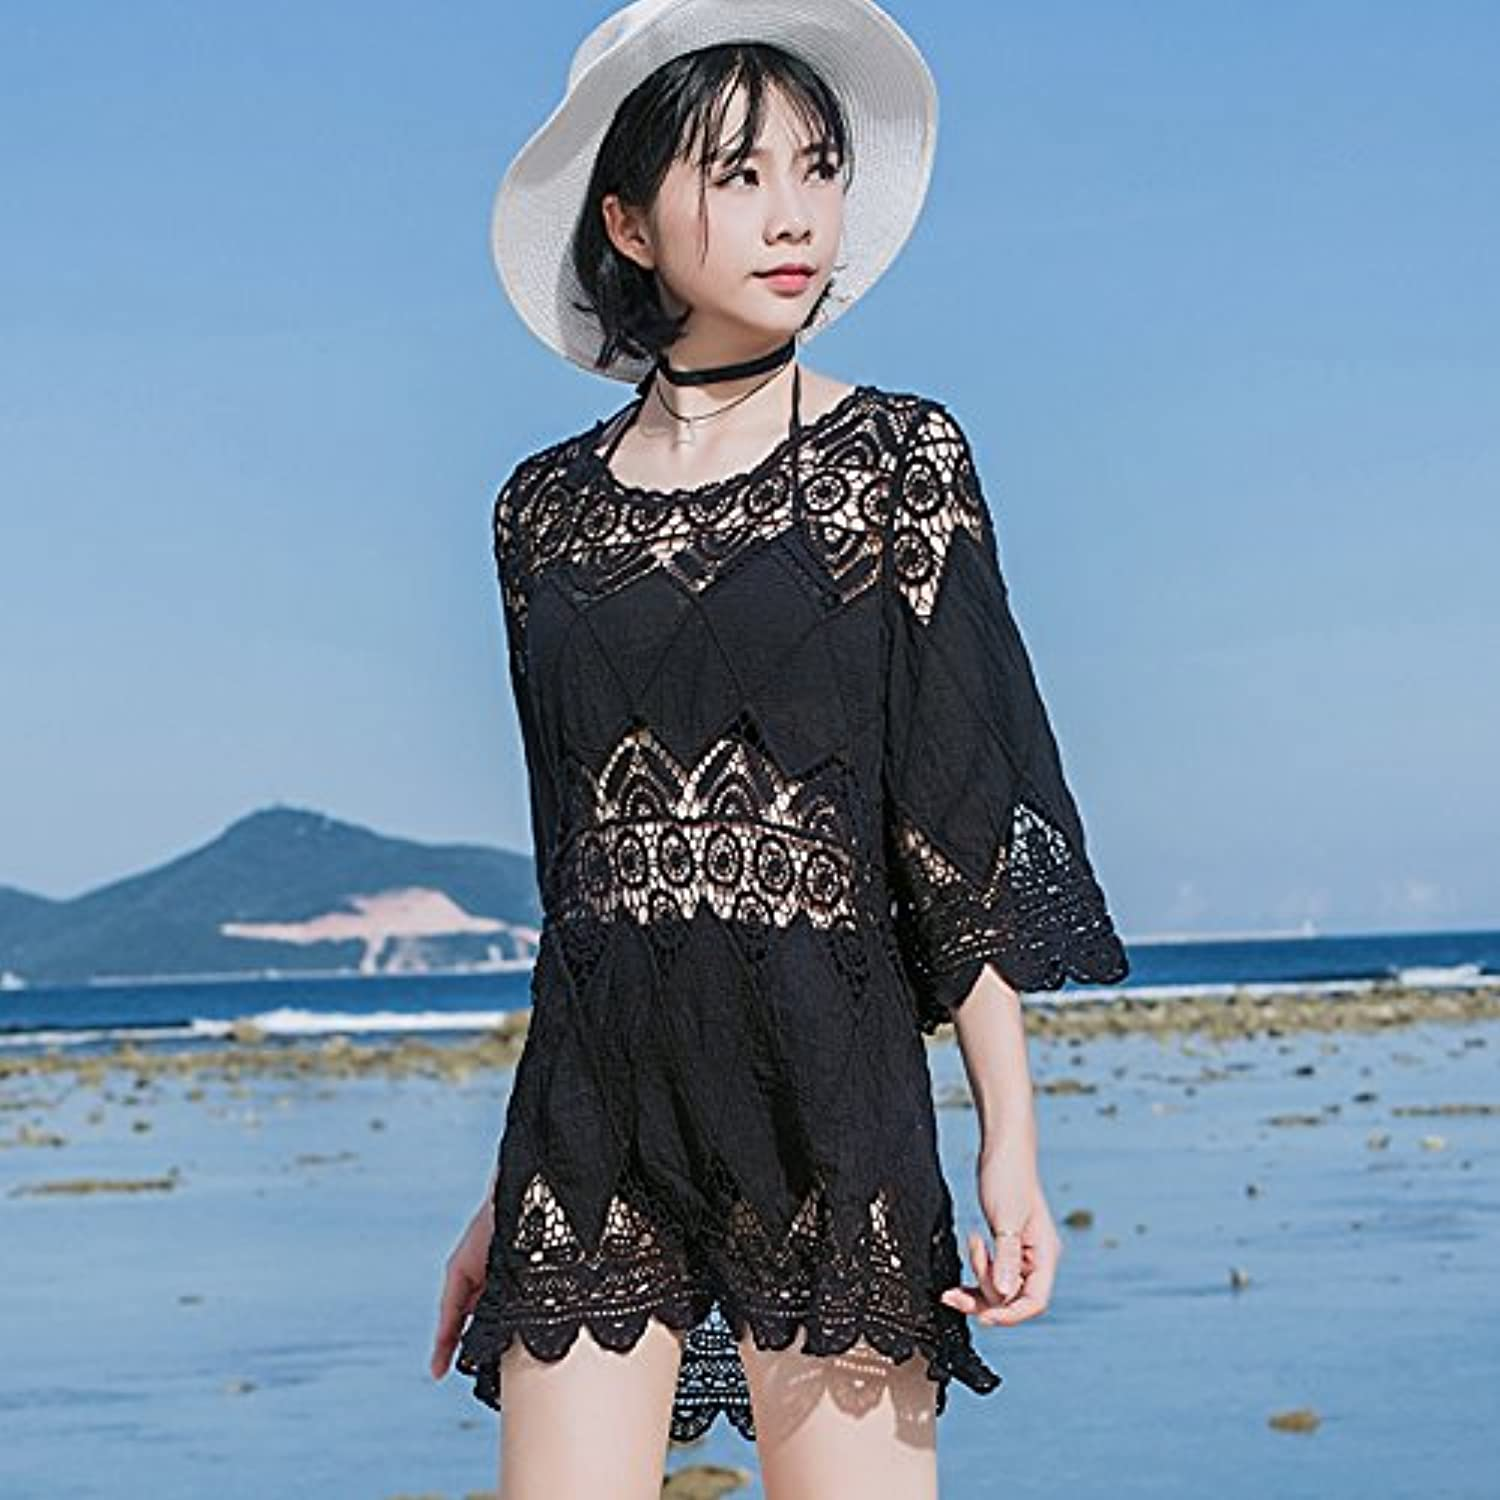 GAOLIM The Beach Resort Black and White Bikini Swimwear Women Cuff Exposed Length of CoverUp.